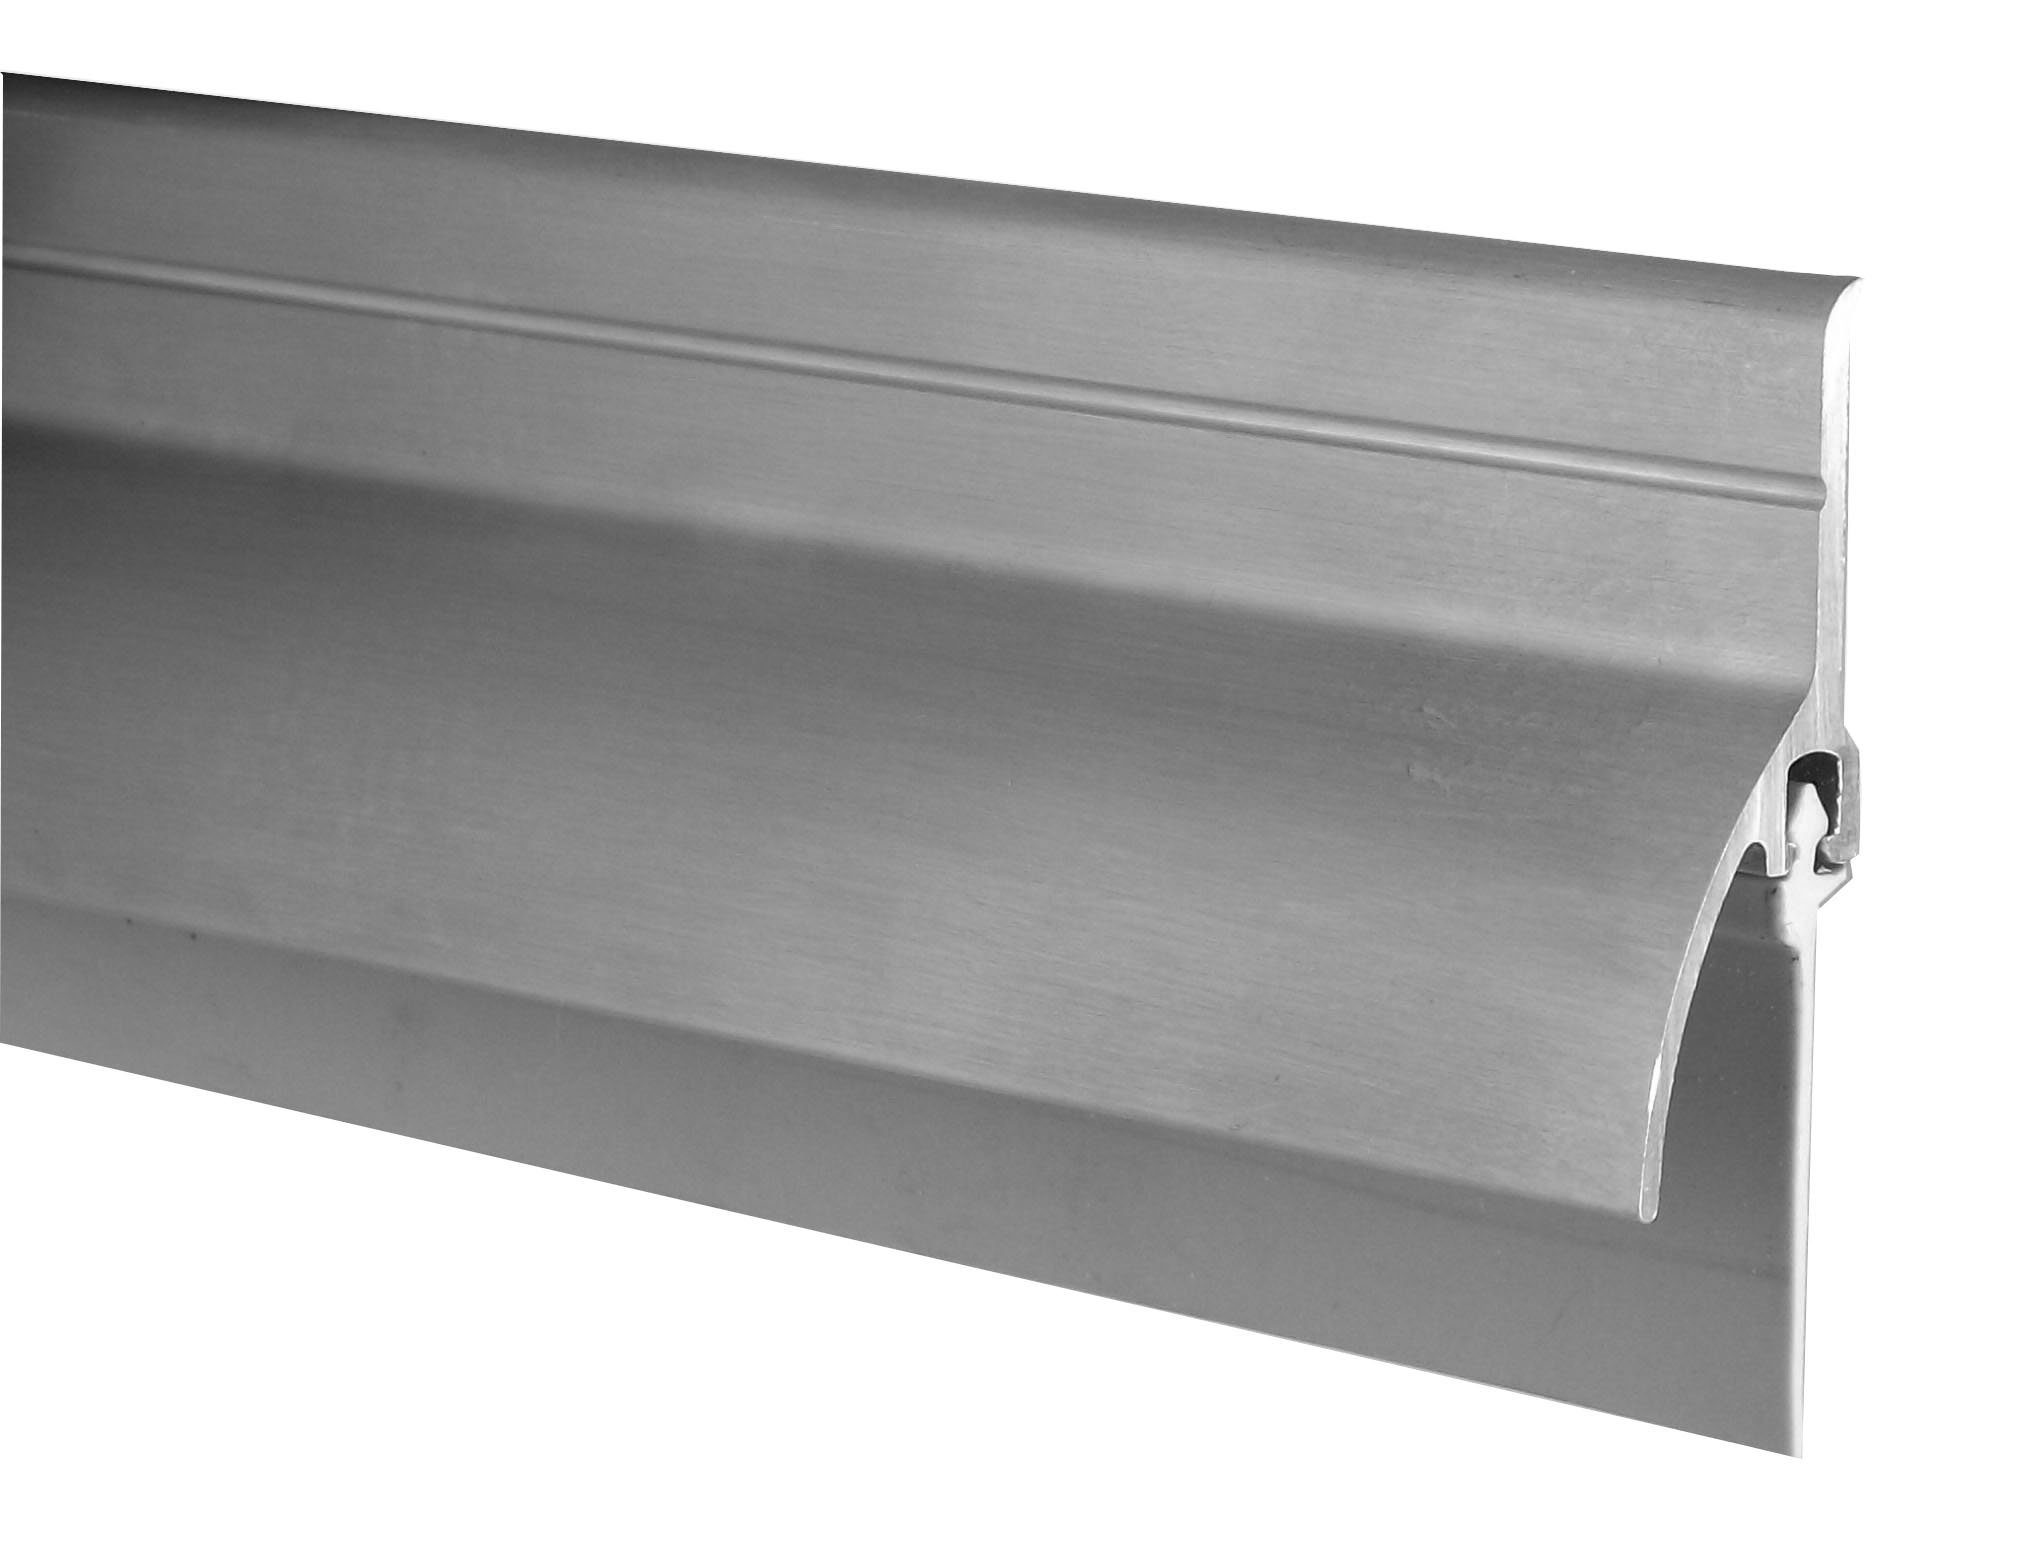 "Pemko Door Bottom Sweep with Rain Drip, Mill Finish Aluminum with Gray Vinyl Insert, 0.5625"" W x 2"" H x 36"" L"